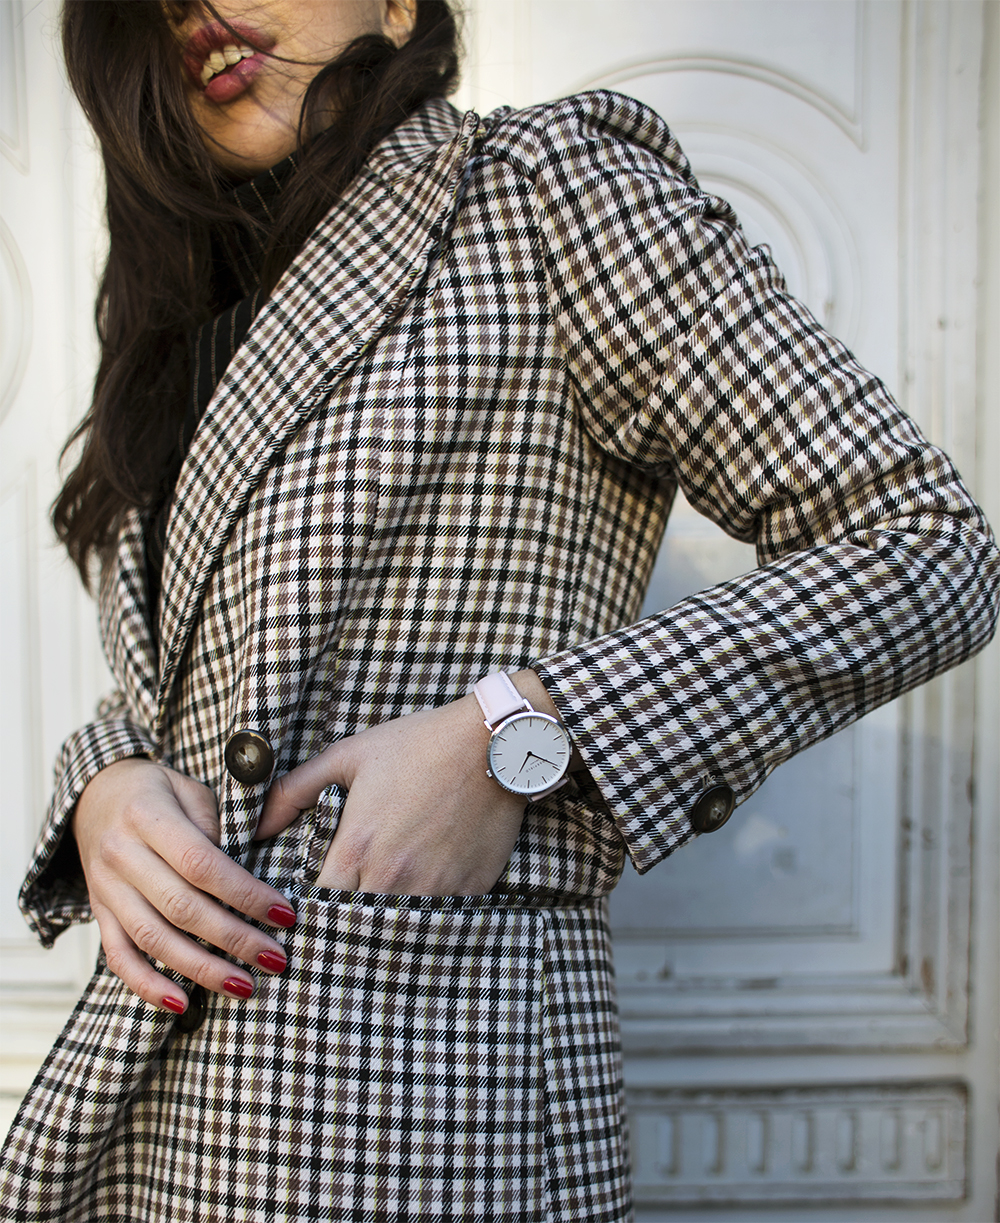 sania claus demina rosefield watches baum und pferdgarten check coat ss17 aw17_1